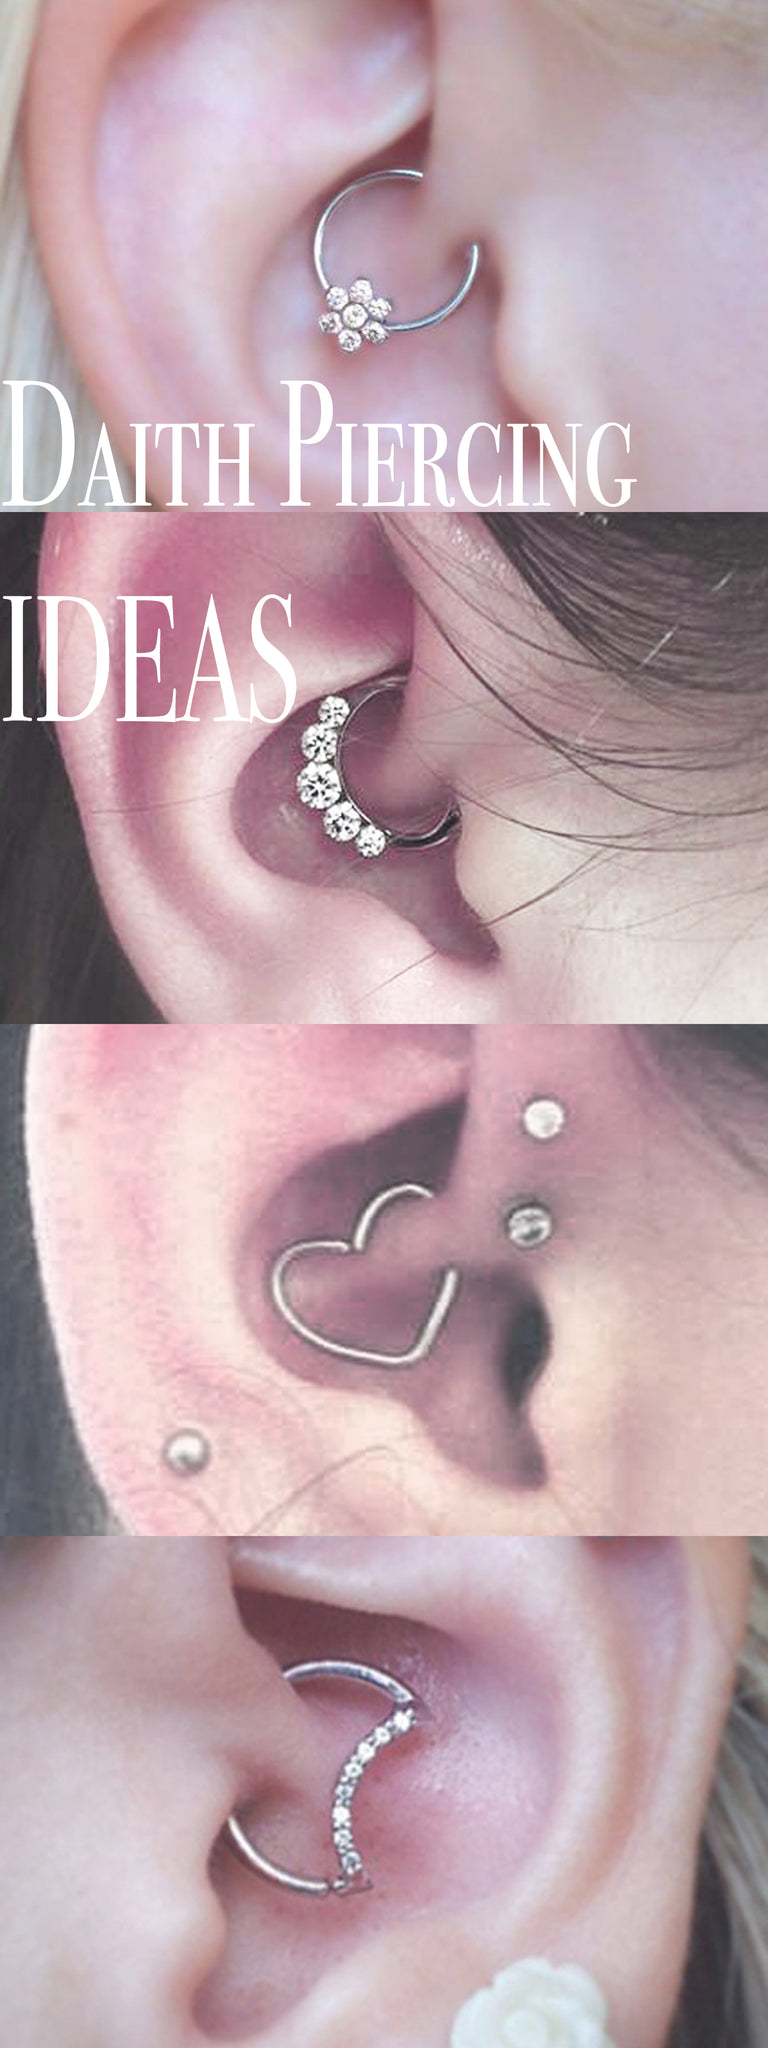 Cute Ear Piercing Ideas Heart Daith Earring Moon Rook Hoop Silver Crystal Flower Clicker Ring - MyBodiArt.com